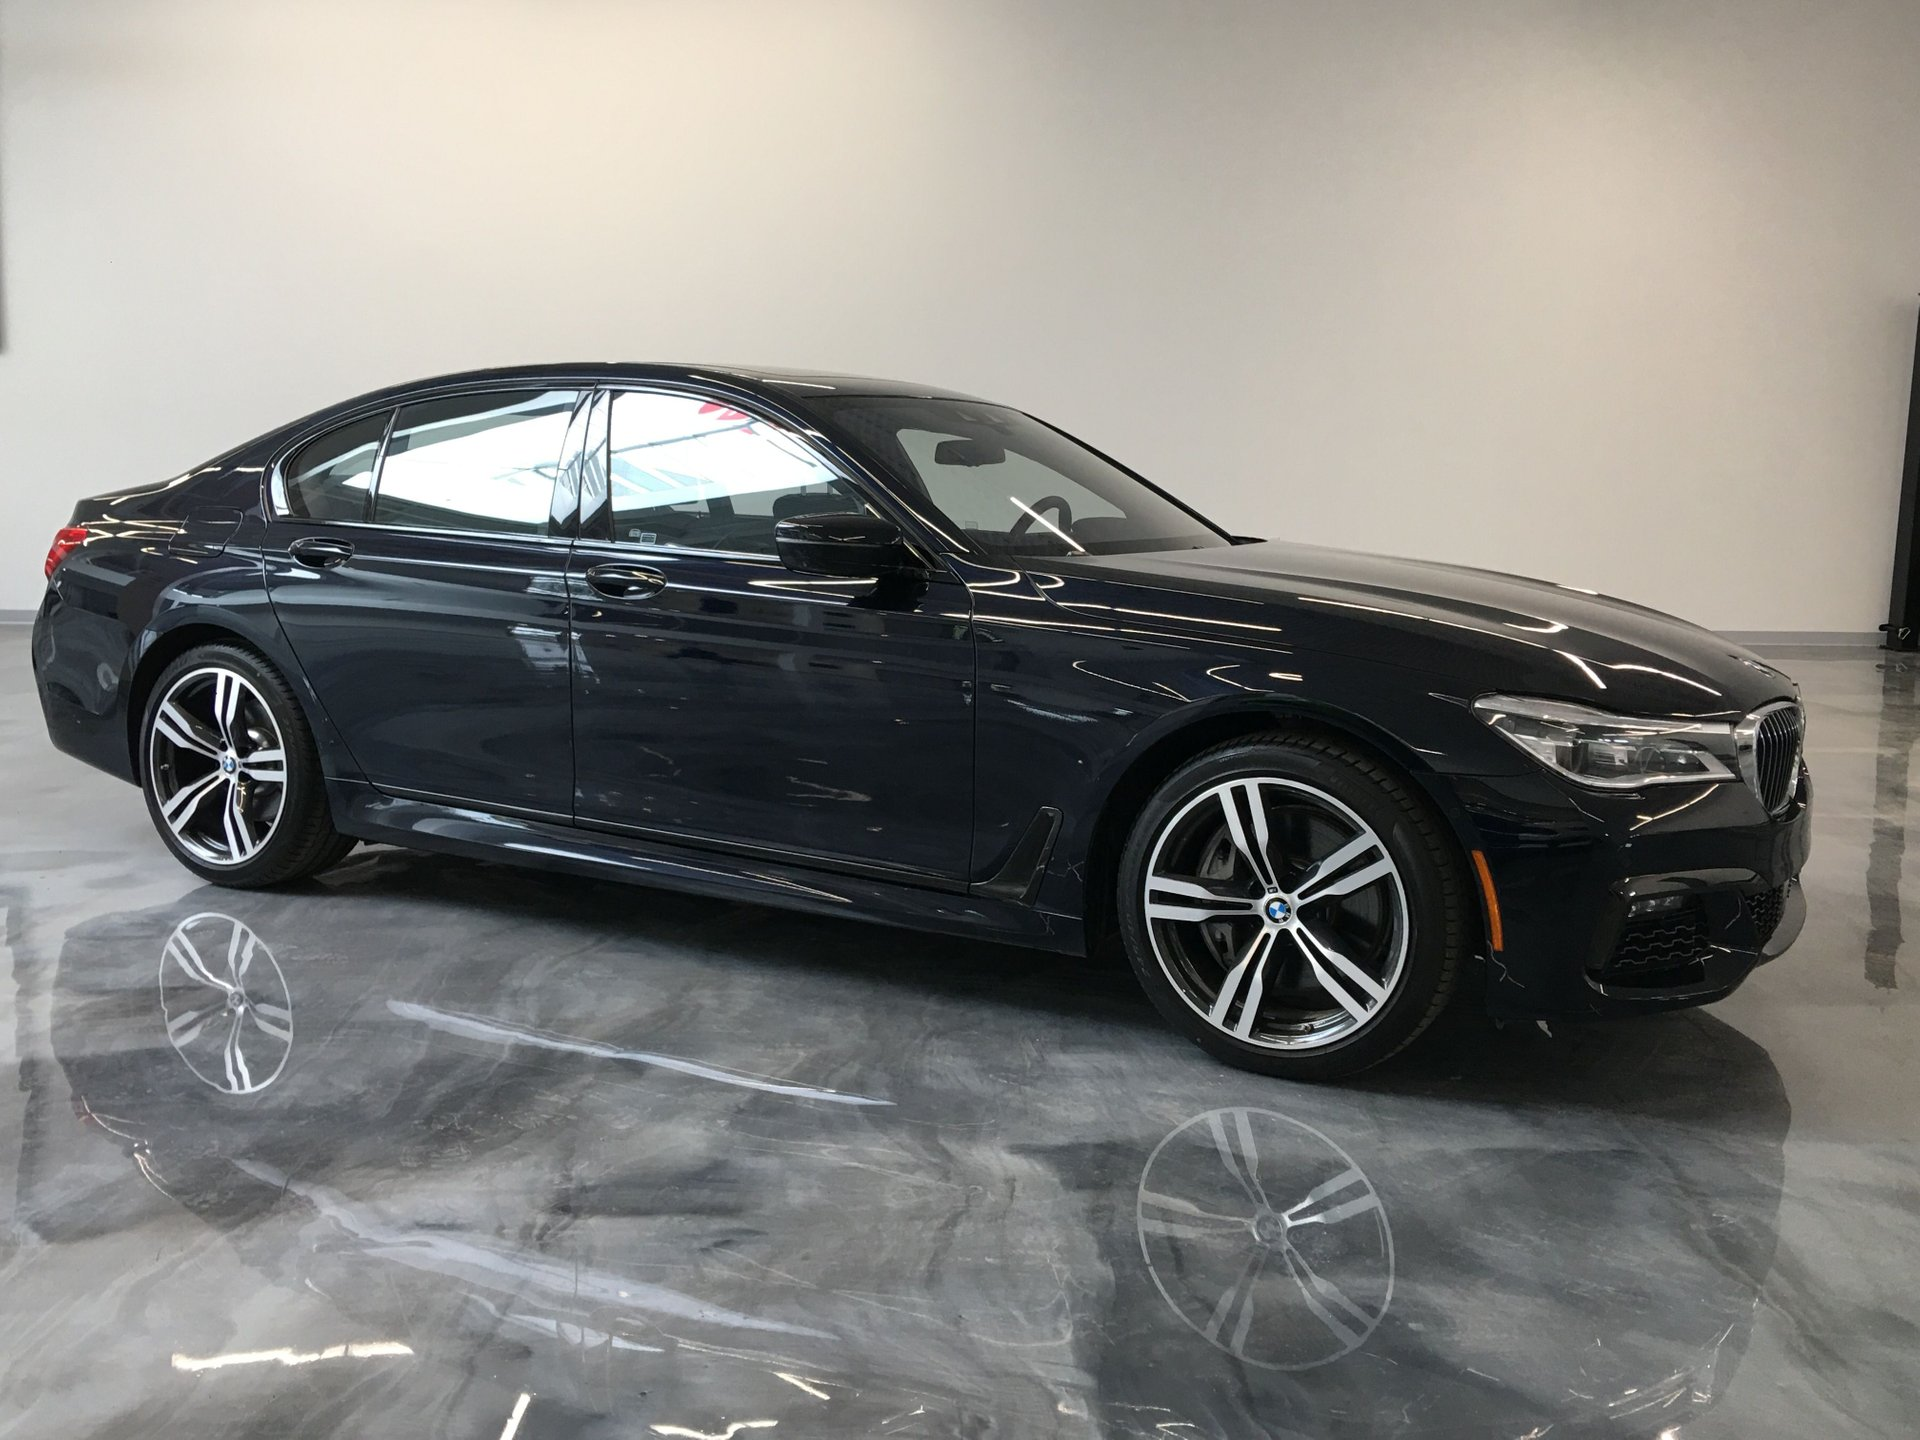 2018 bmw 750i xdrive sold thank you